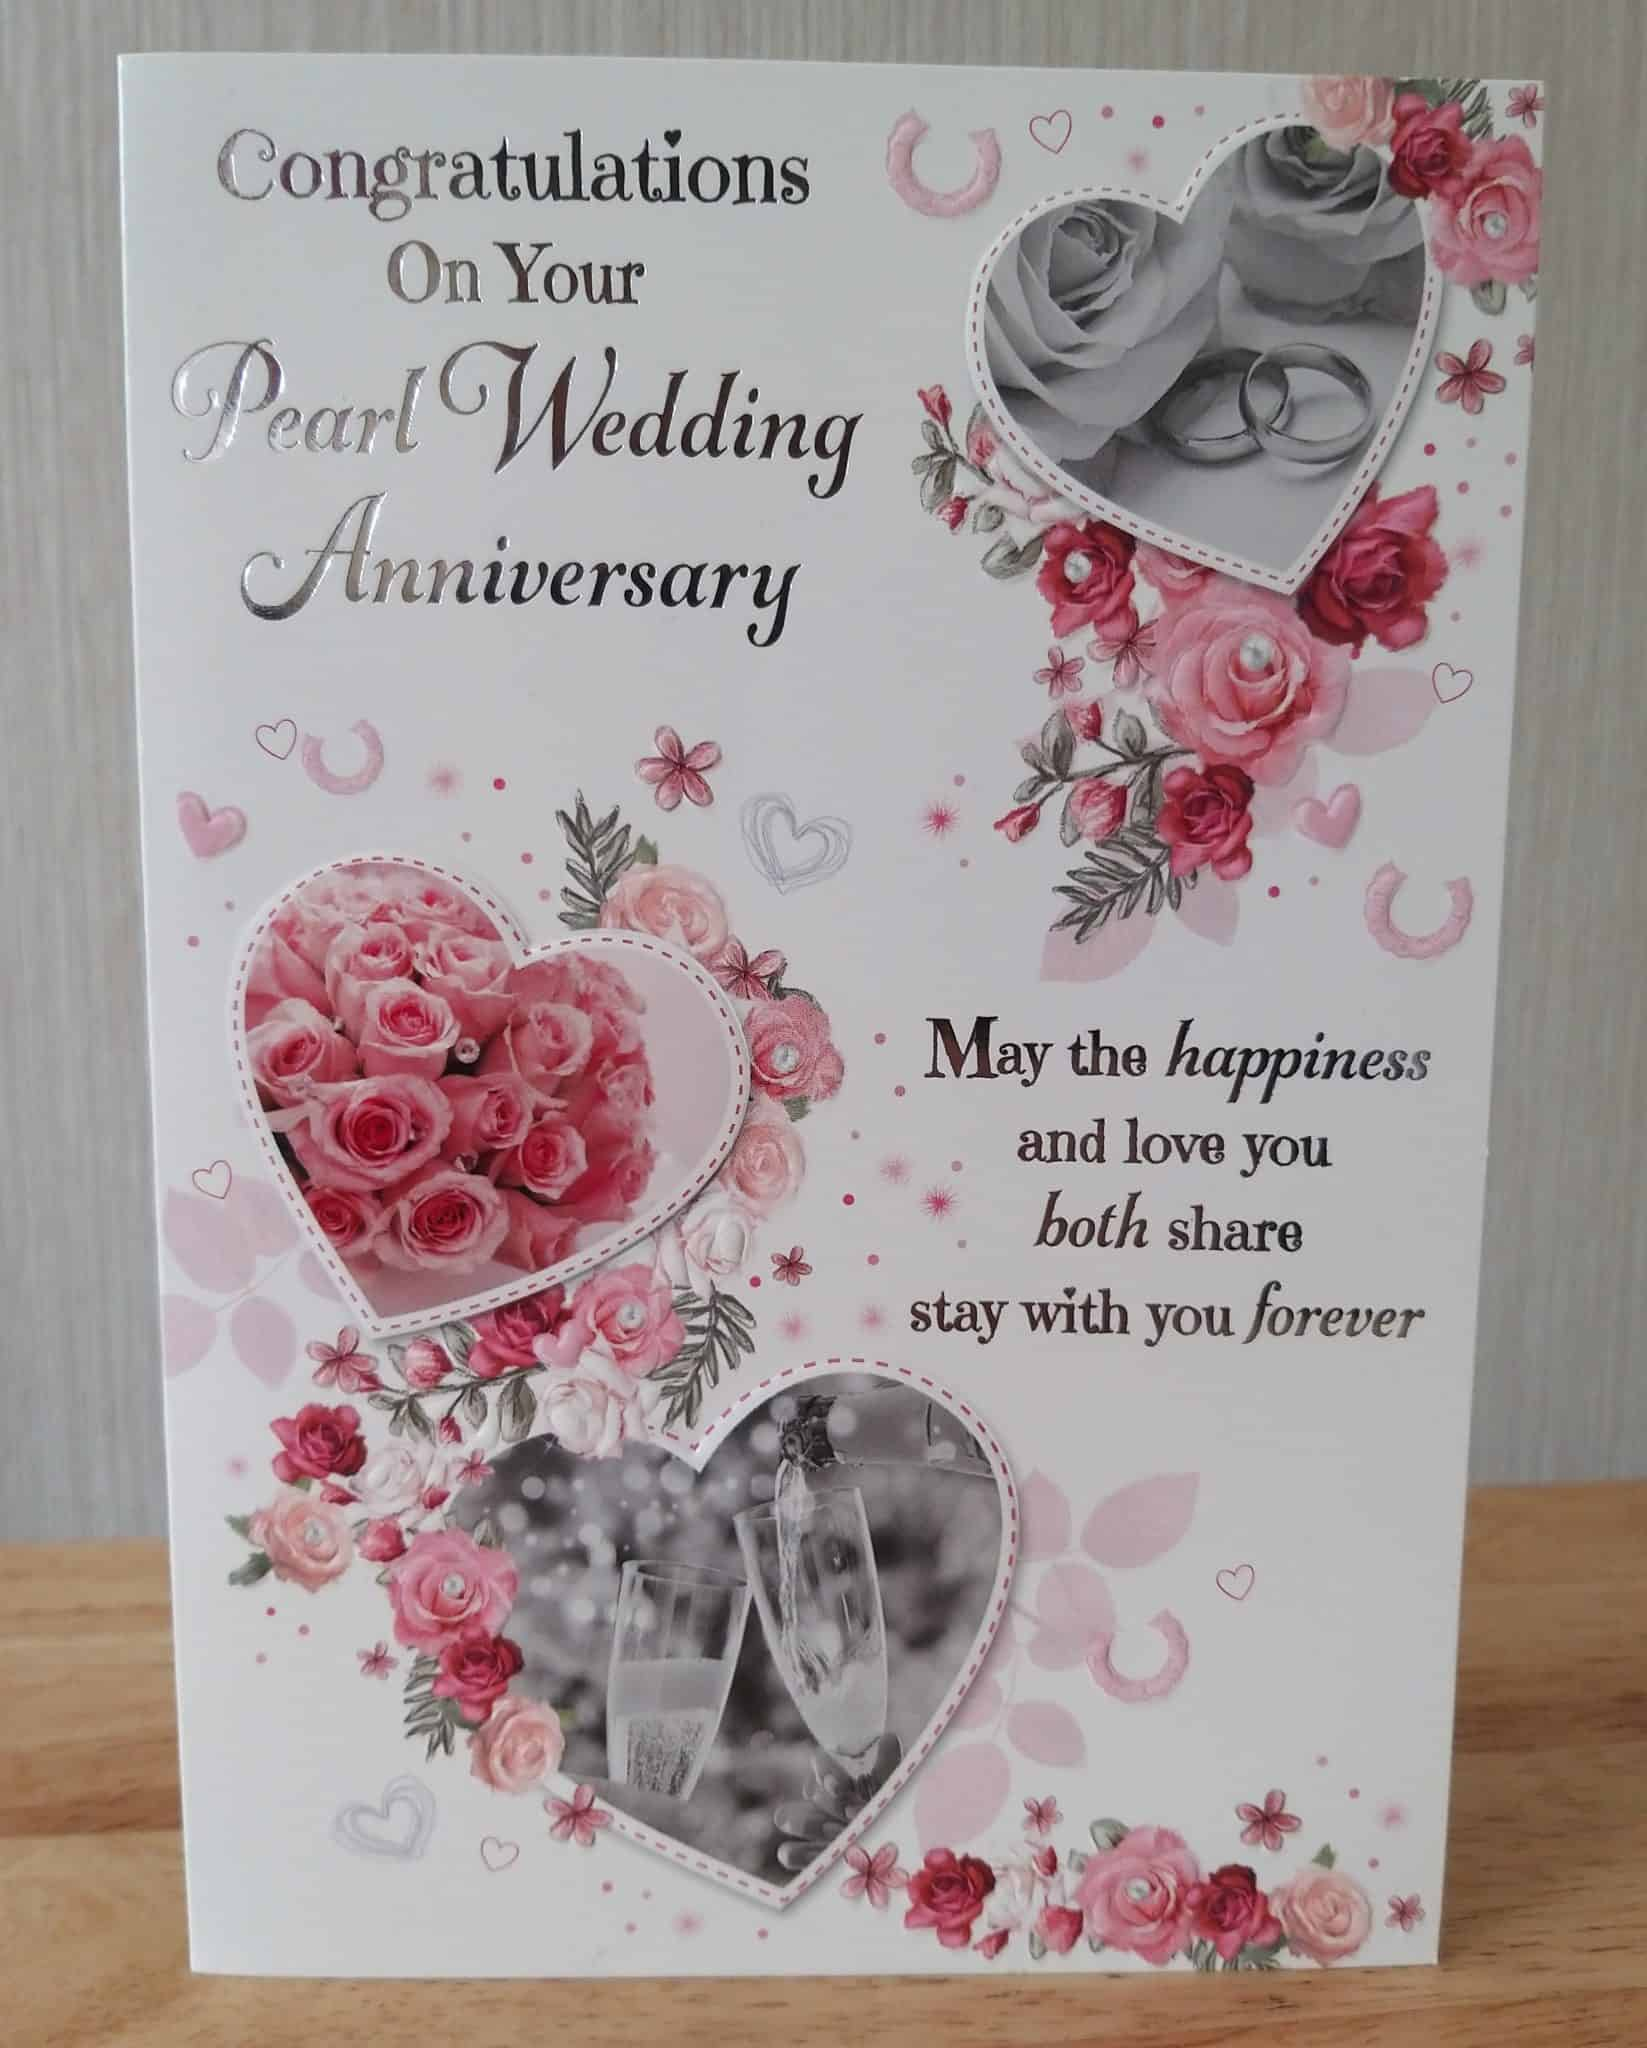 Gifts For 21st Wedding Anniversary: Pearl Wedding Anniversary Card With Sentiment Verse